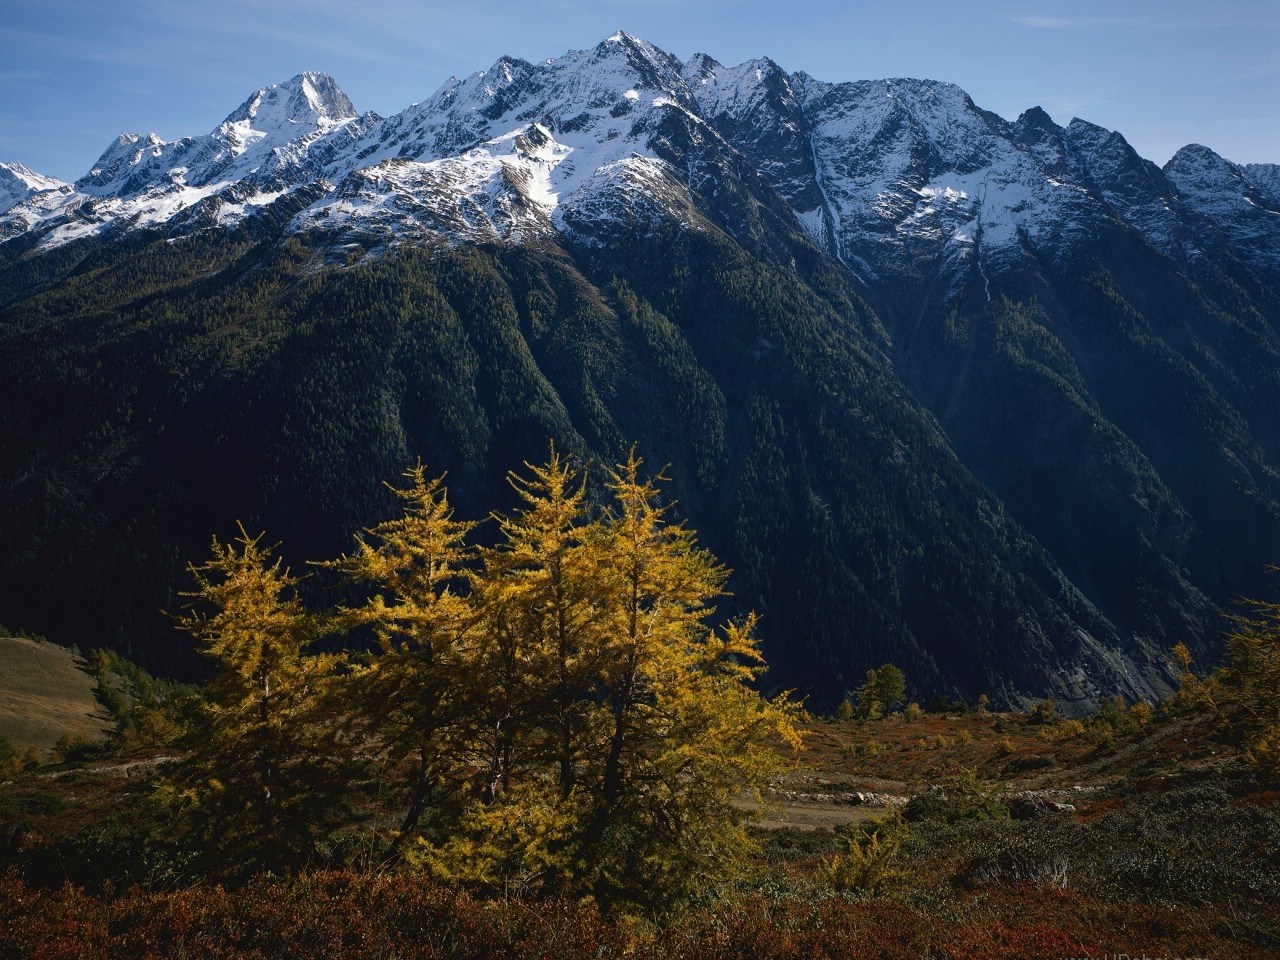 33460 download wallpaper Landscape, Trees, Mountains screensavers and pictures for free